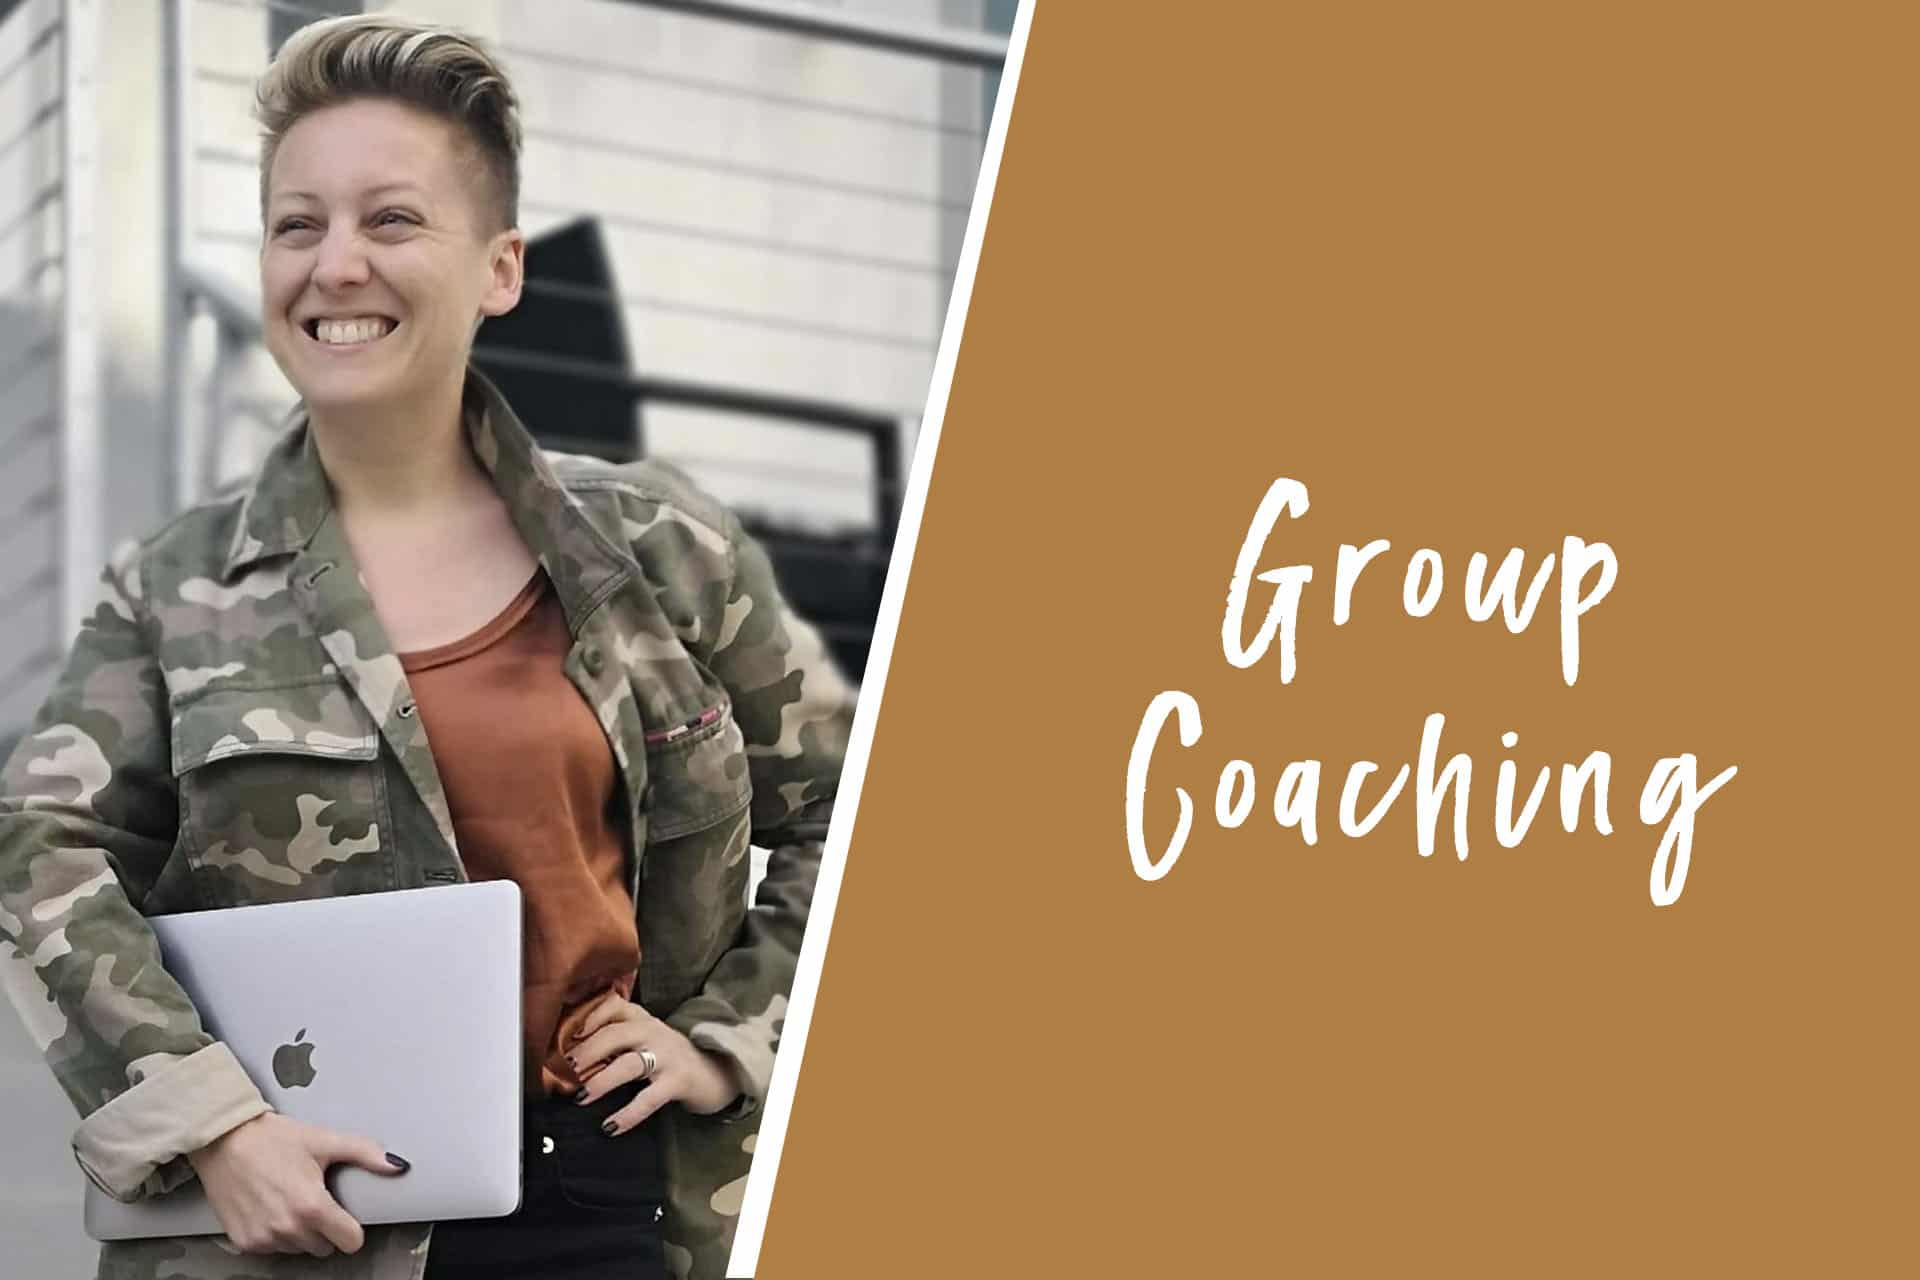 Expansion group coaching